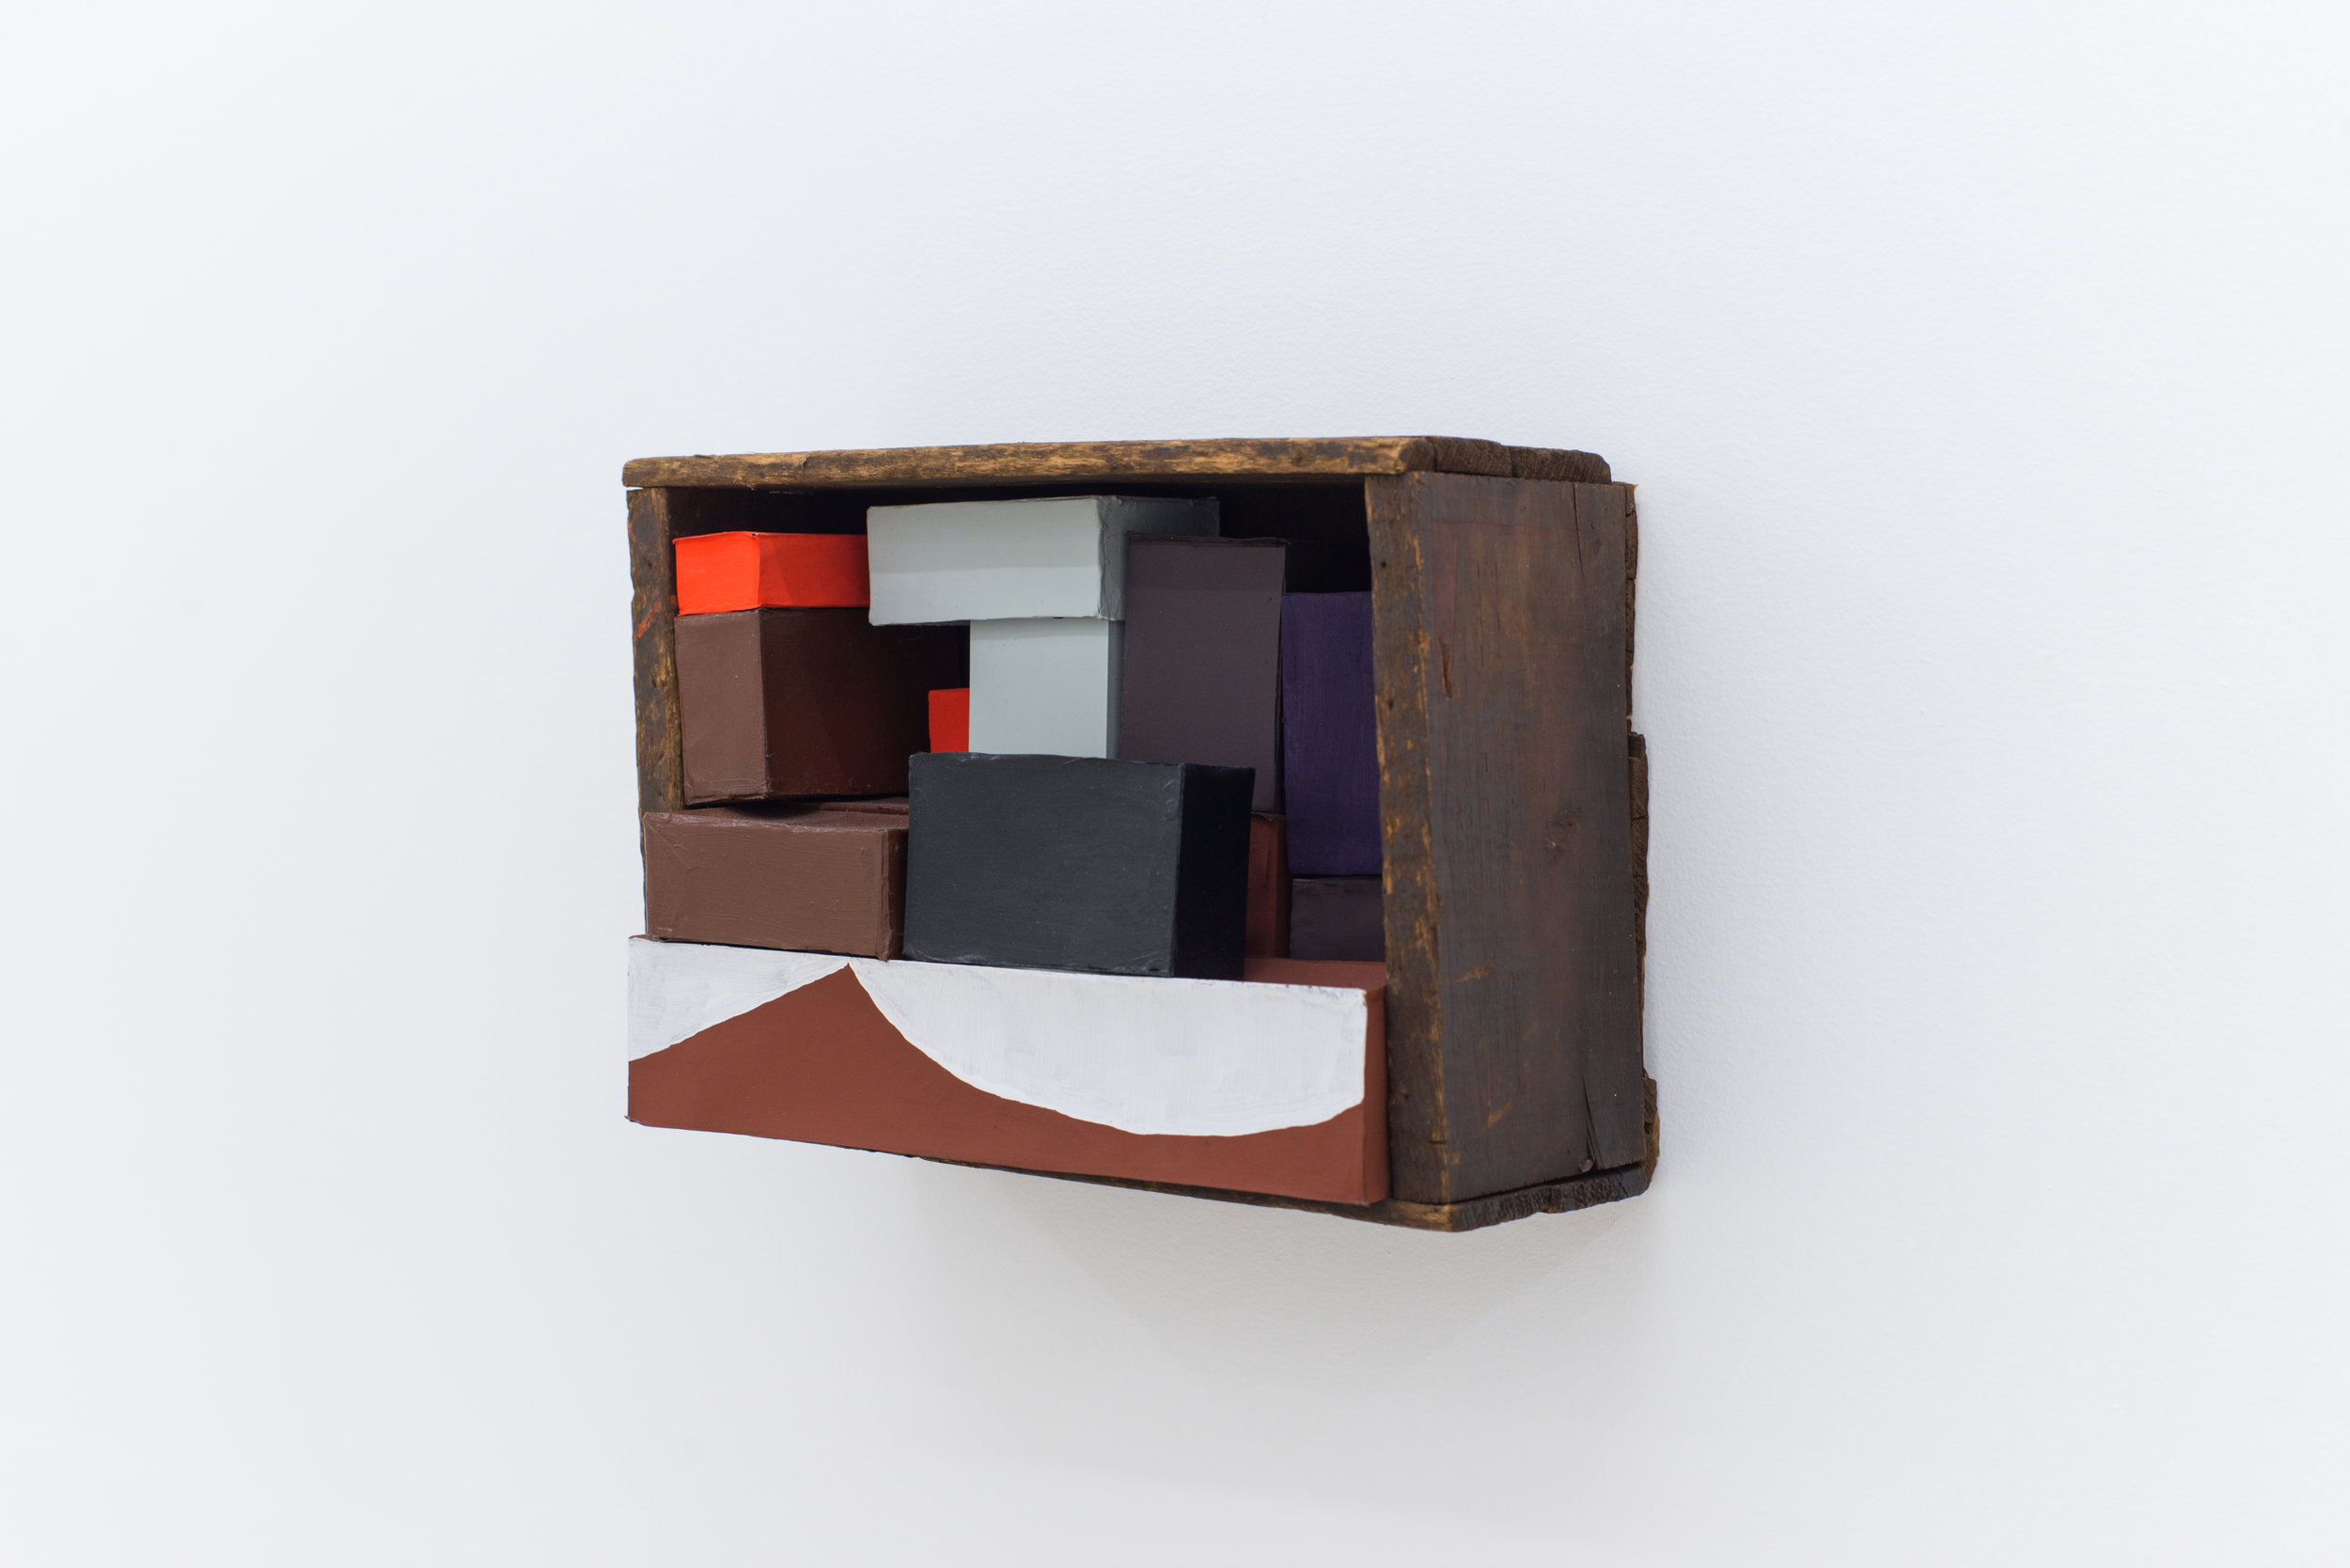 Nancy Shaver   Crooked Box, White Curve  2006 Wooden box, cardboard boxes, flash acrylic, houseplant 9 x 13 x 6 inches